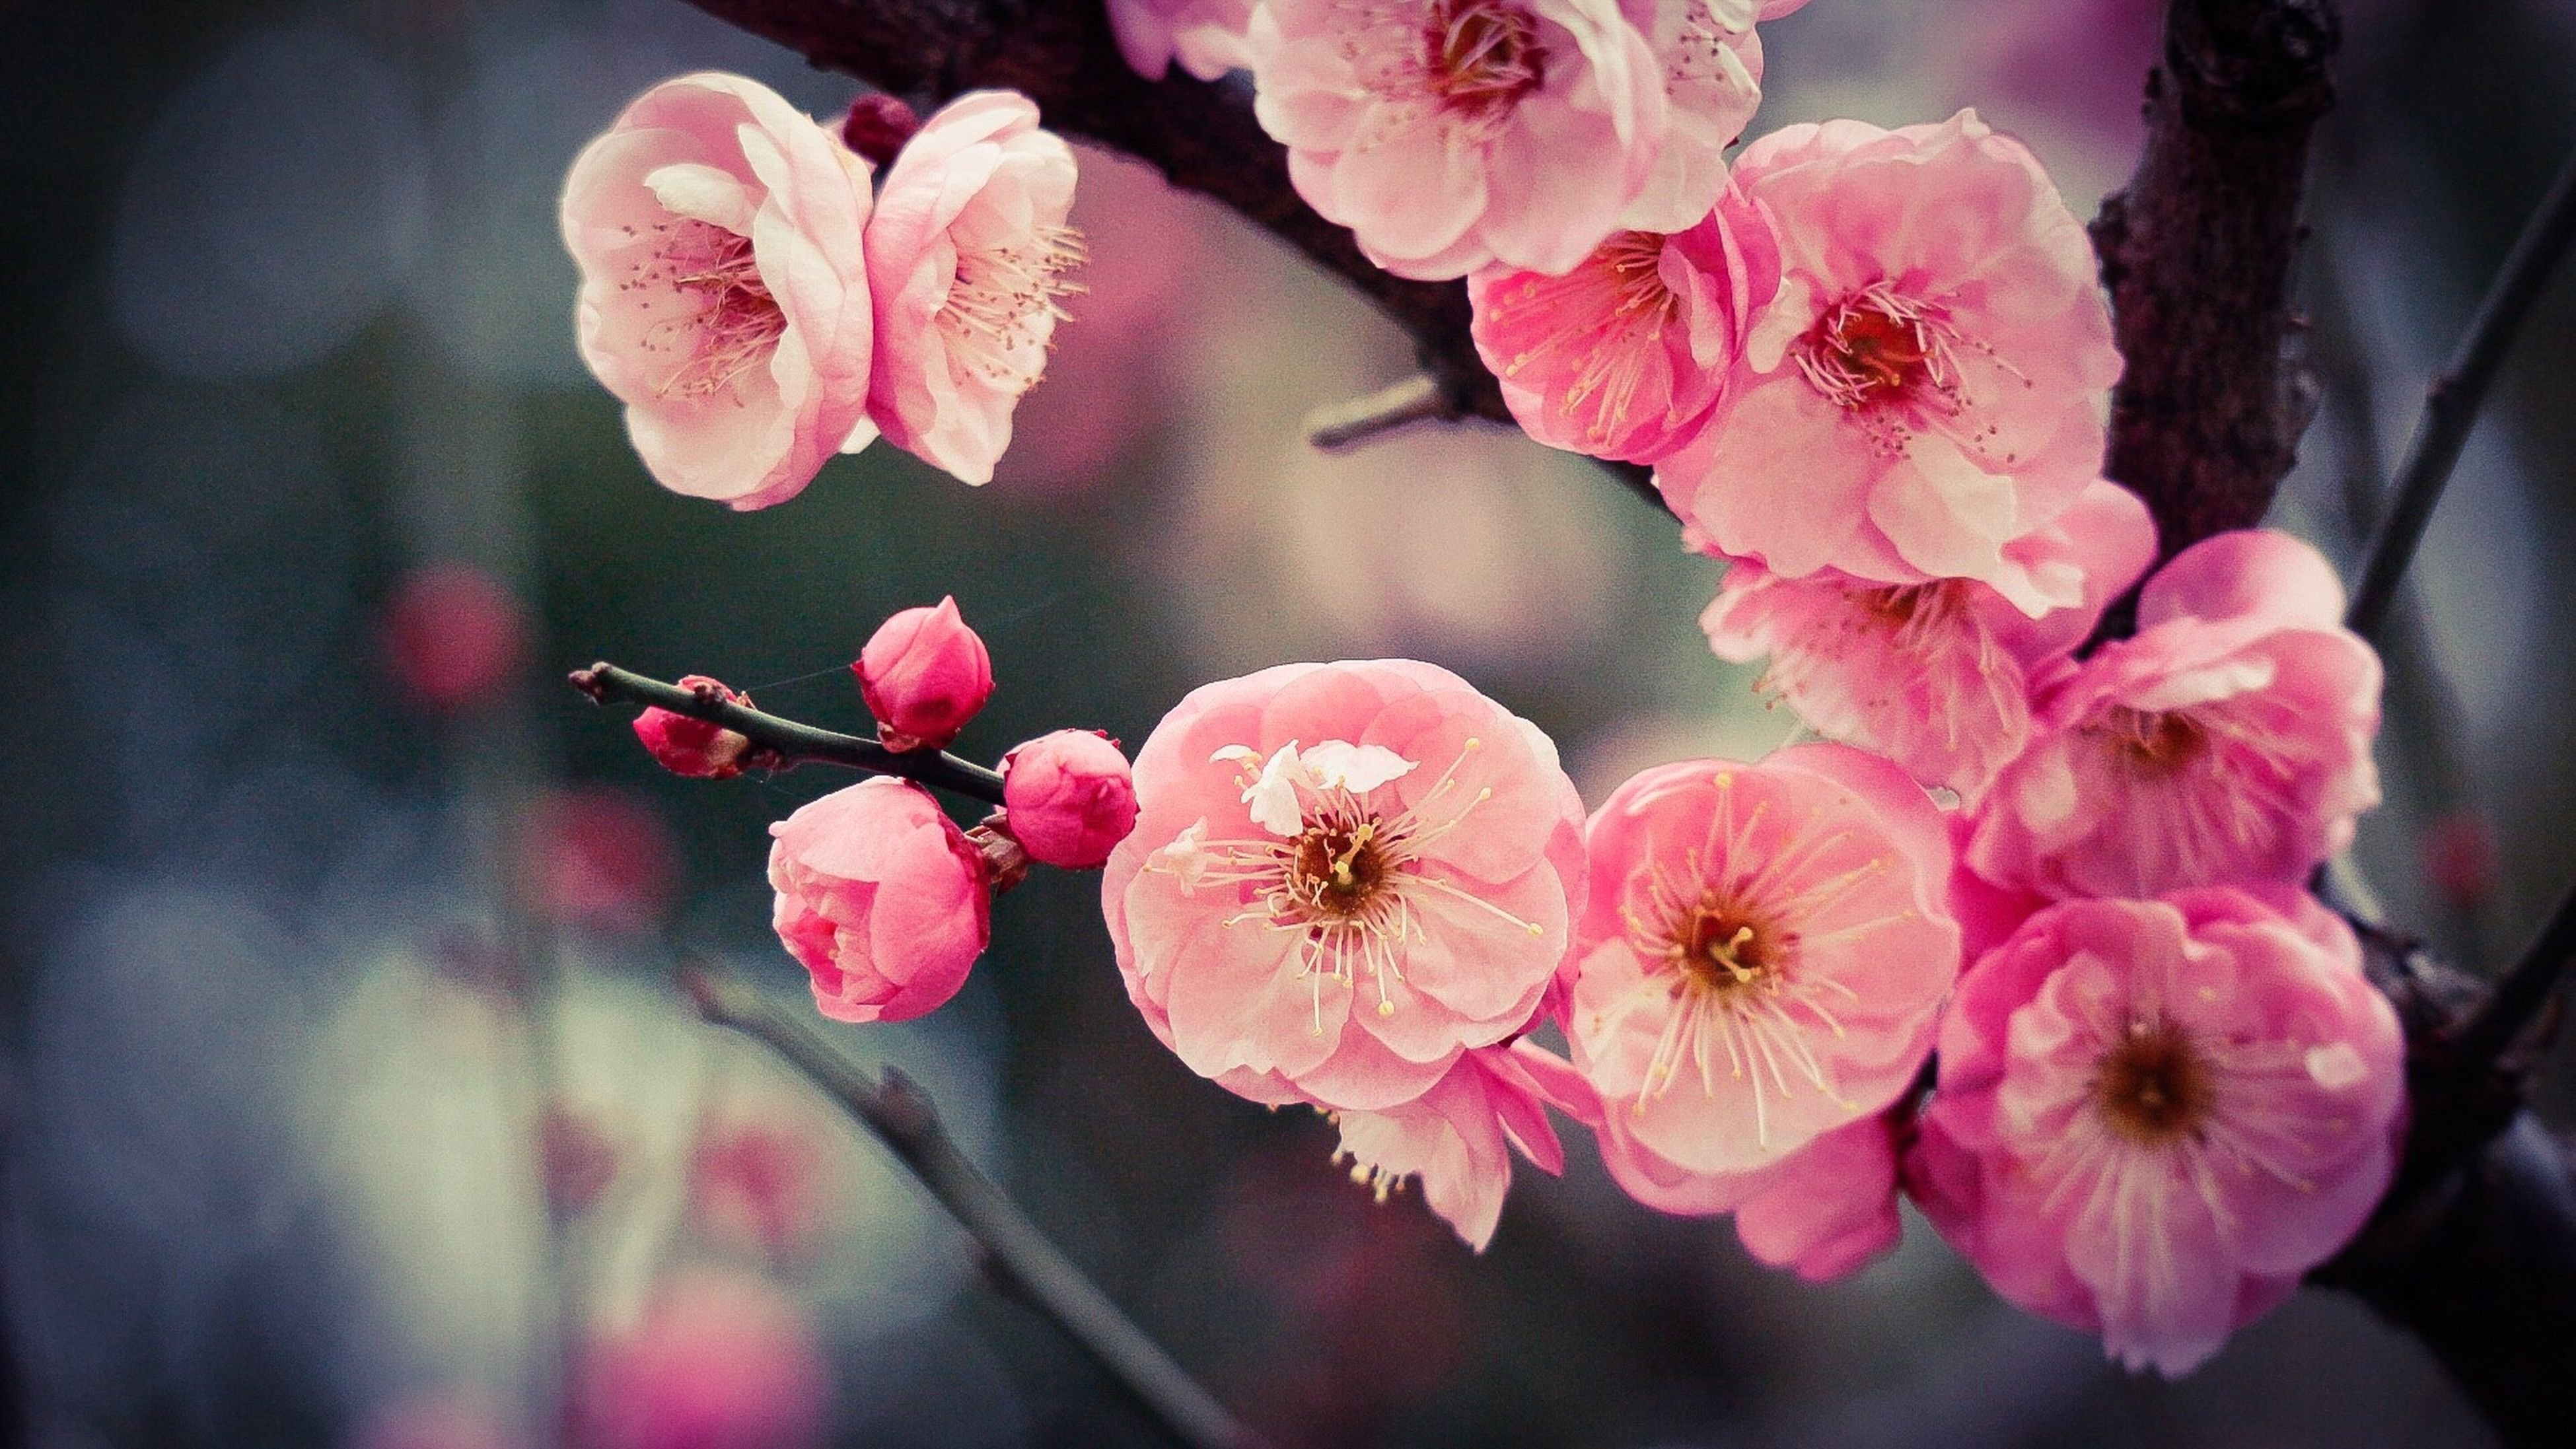 flower, nature, freshness, fragility, beauty in nature, pink color, growth, petal, flower head, close-up, plant, no people, outdoors, day, plum blossom